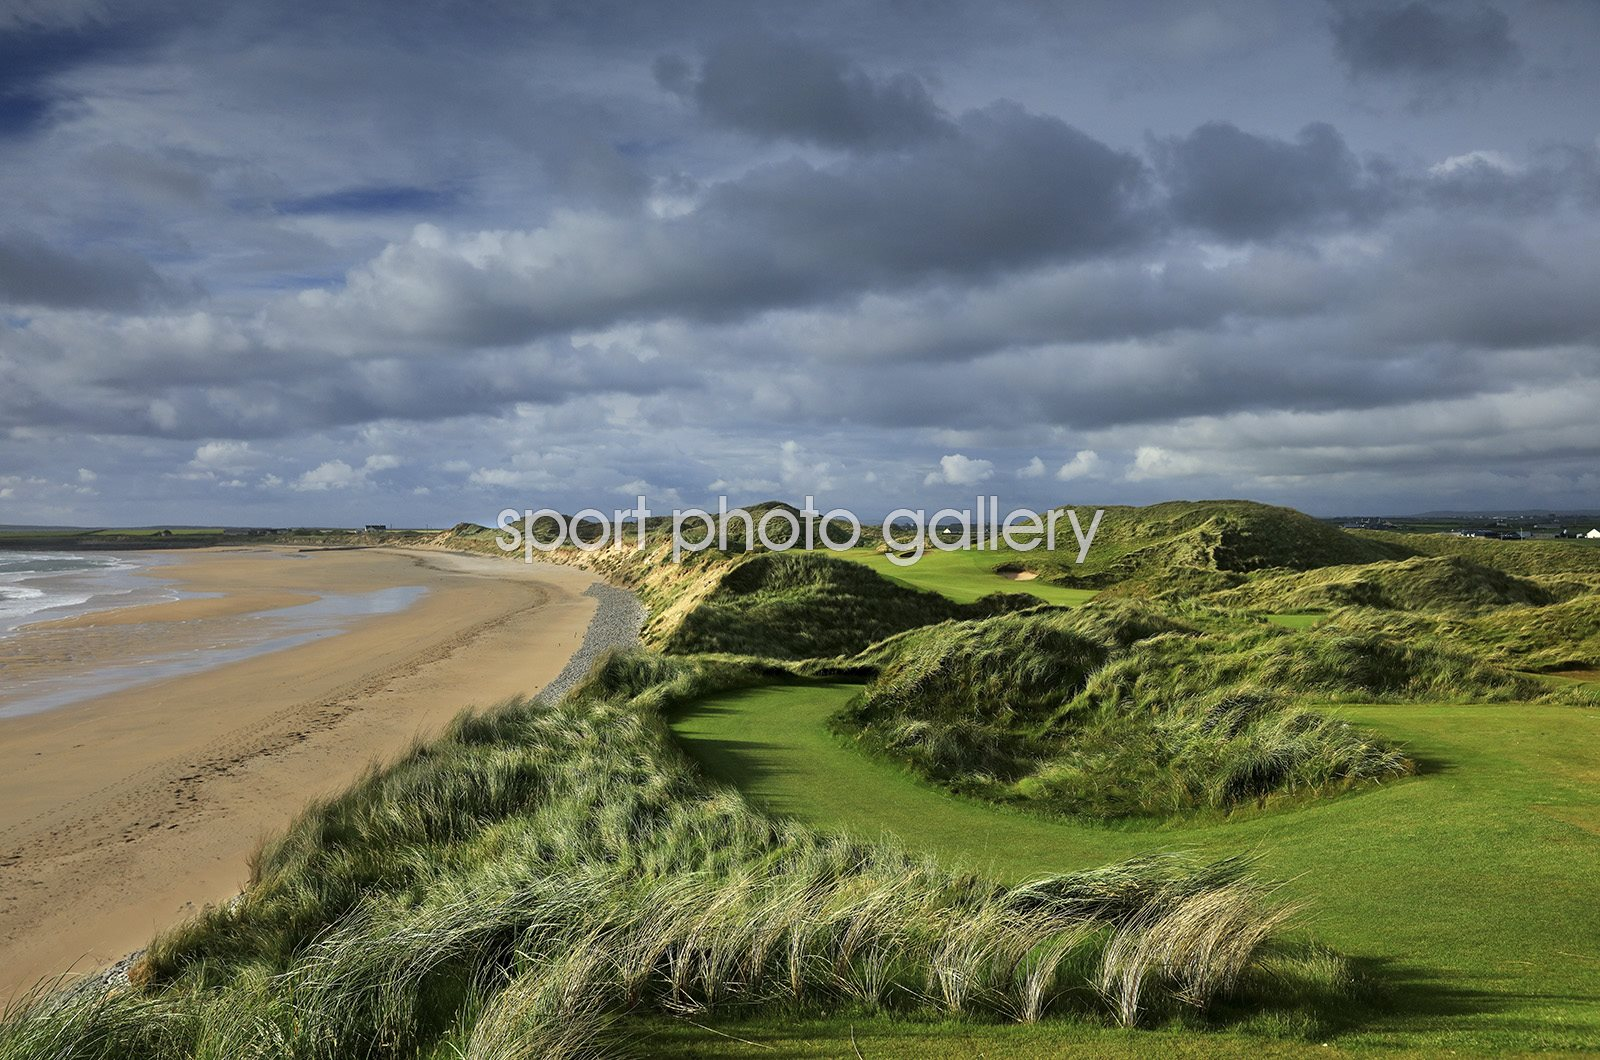 Trump International Golf Links Doonbeg 6th Hole, Co Clare, Ireland